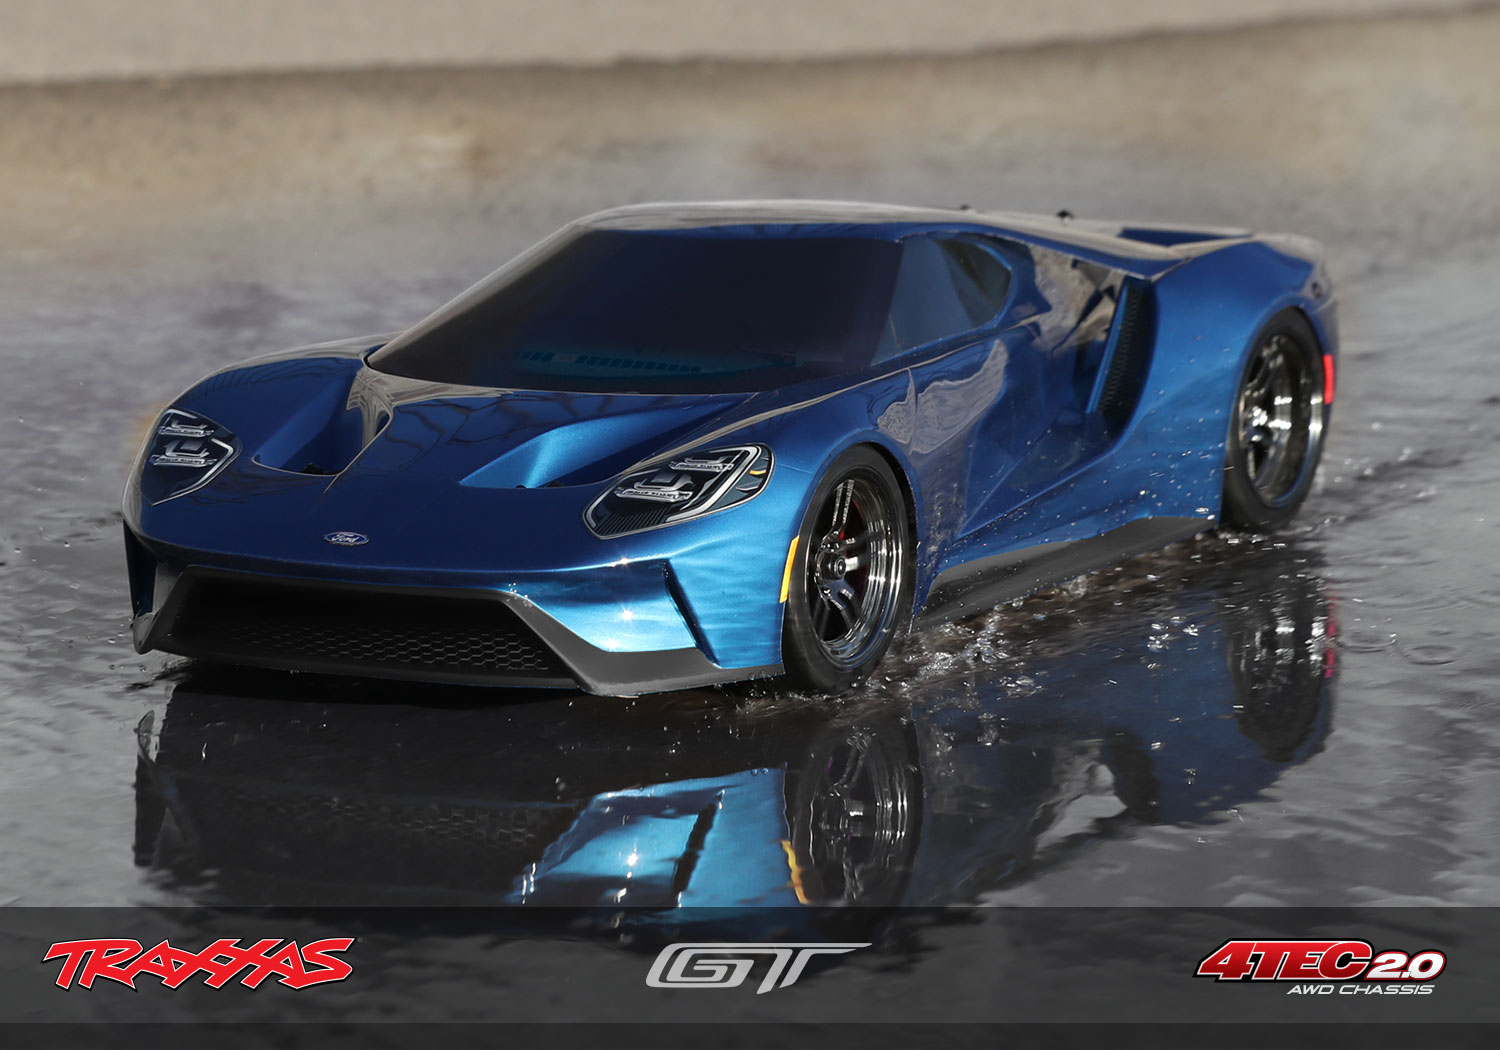 Ford ford gt images : Traxxas Ford GT | Made to be Driven